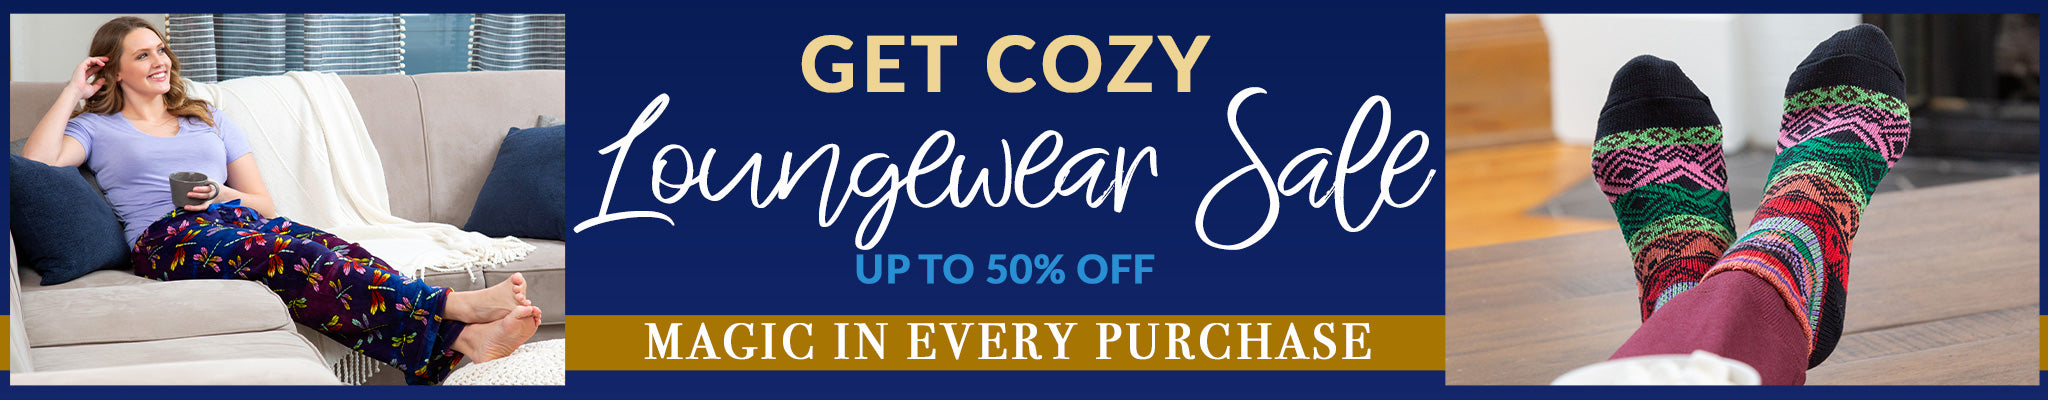 Get Cozy Loungewear Sale